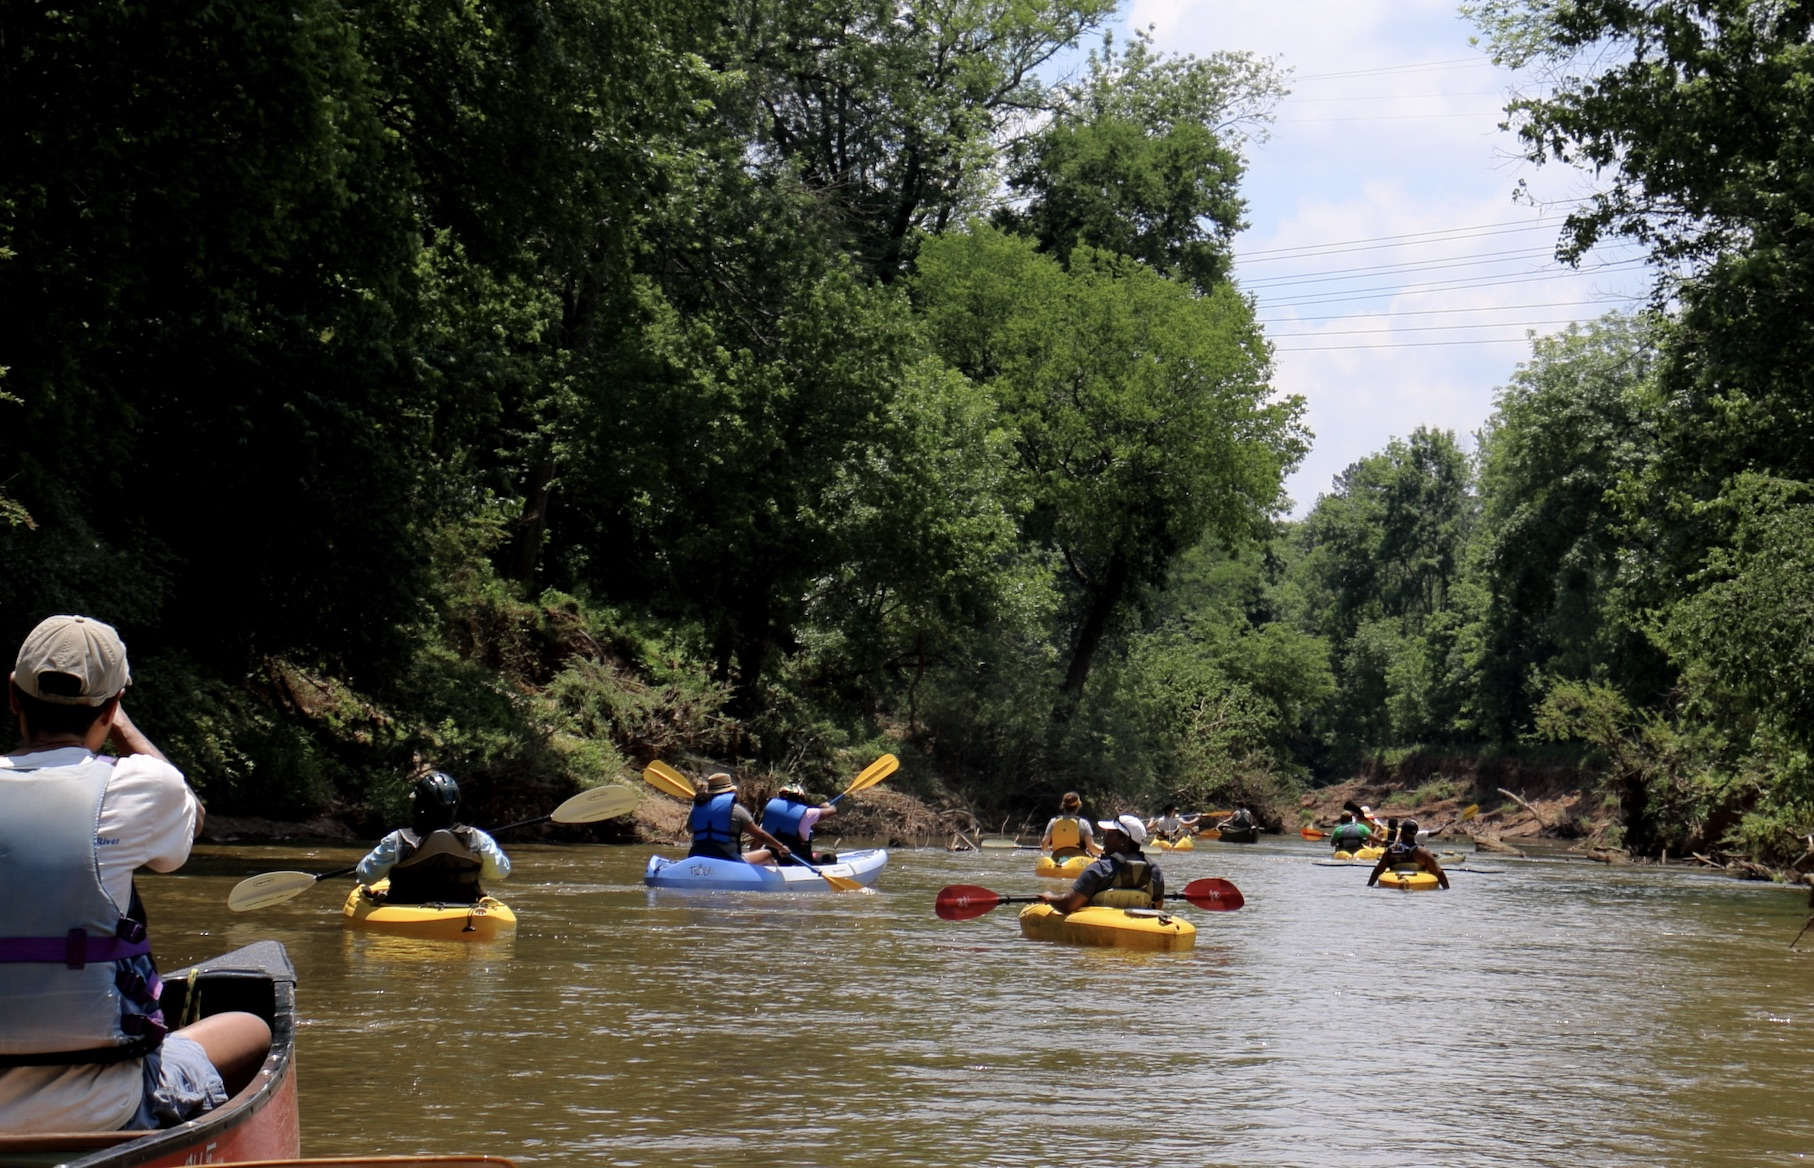 South River, paddlers, may 19, 2019